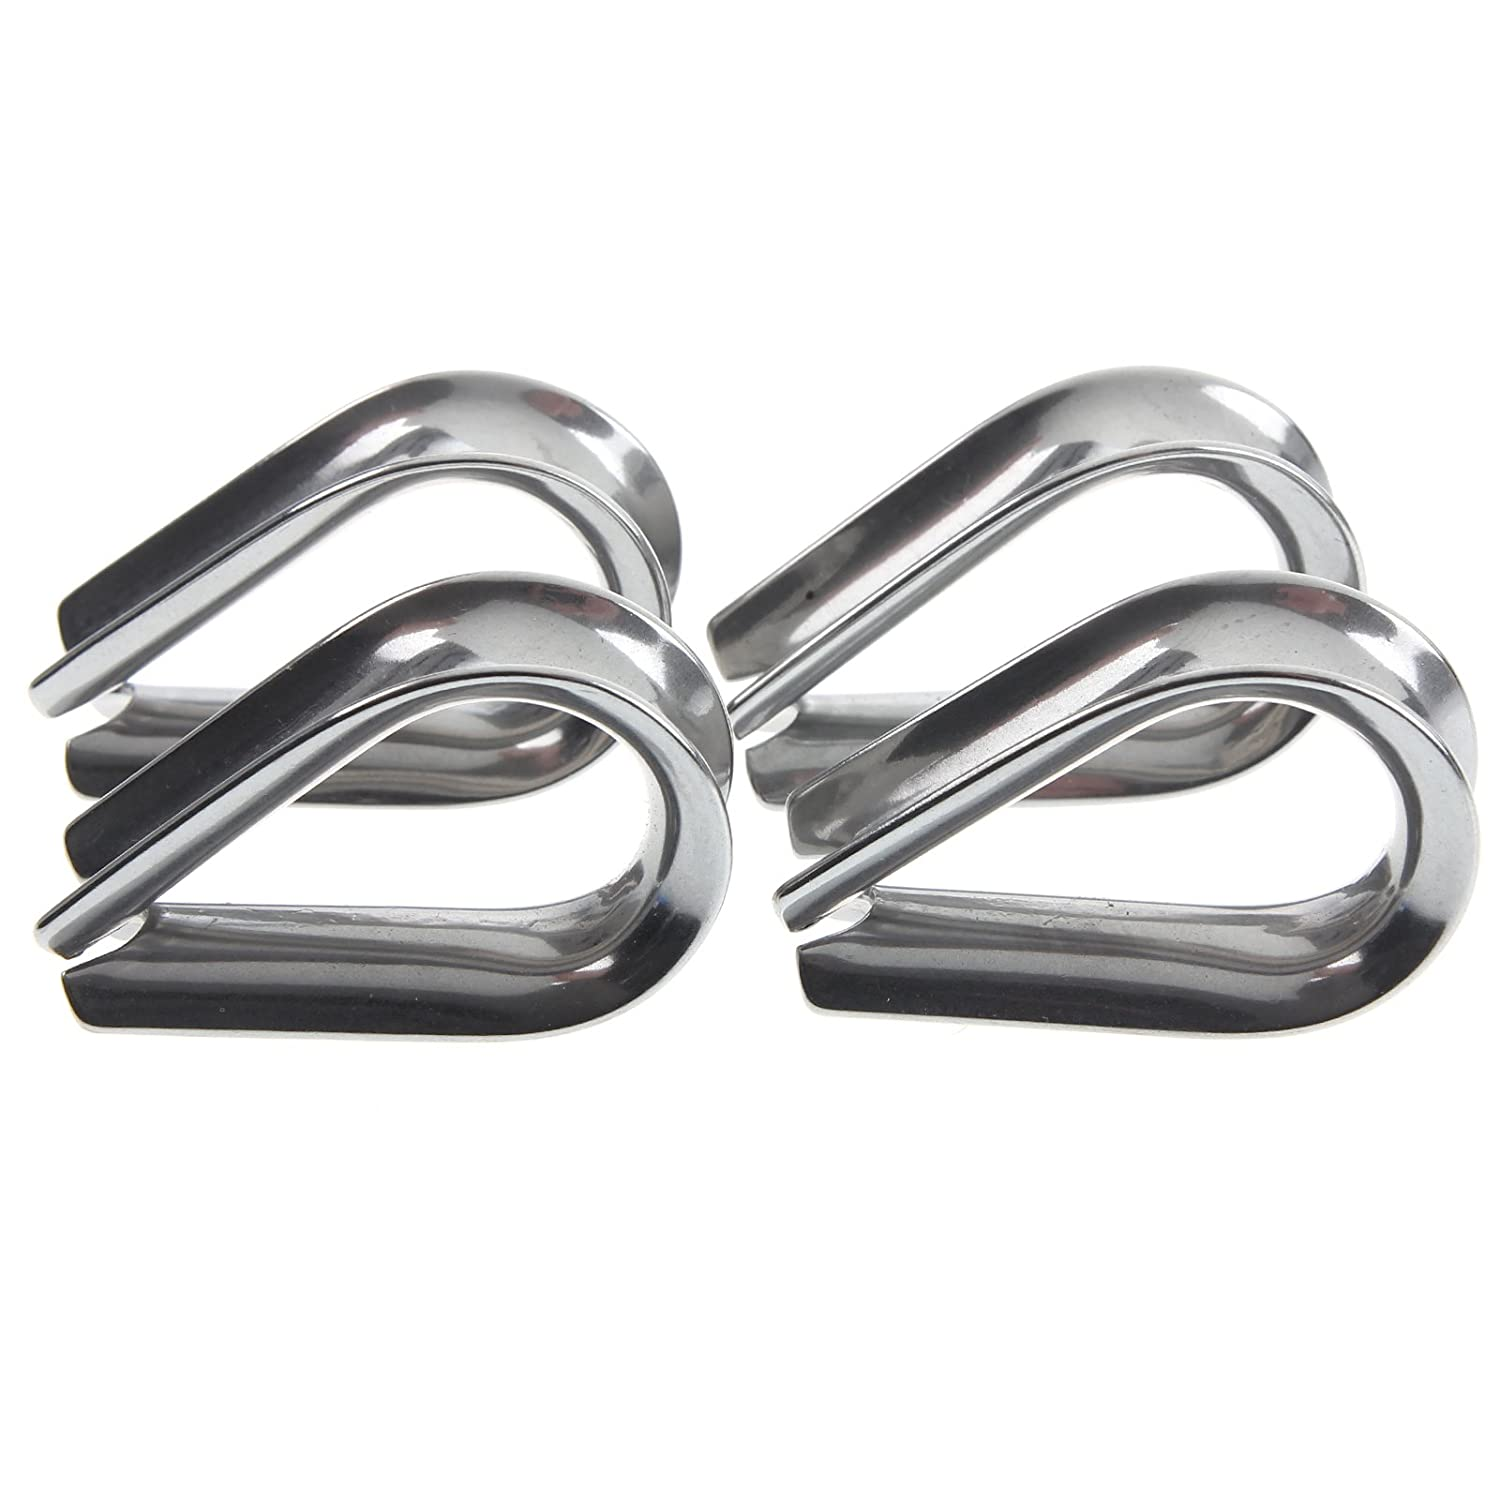 4 x Stainless Steel - 3mm Wire/Rope Thimbles: Amazon.co.uk: Sports ...